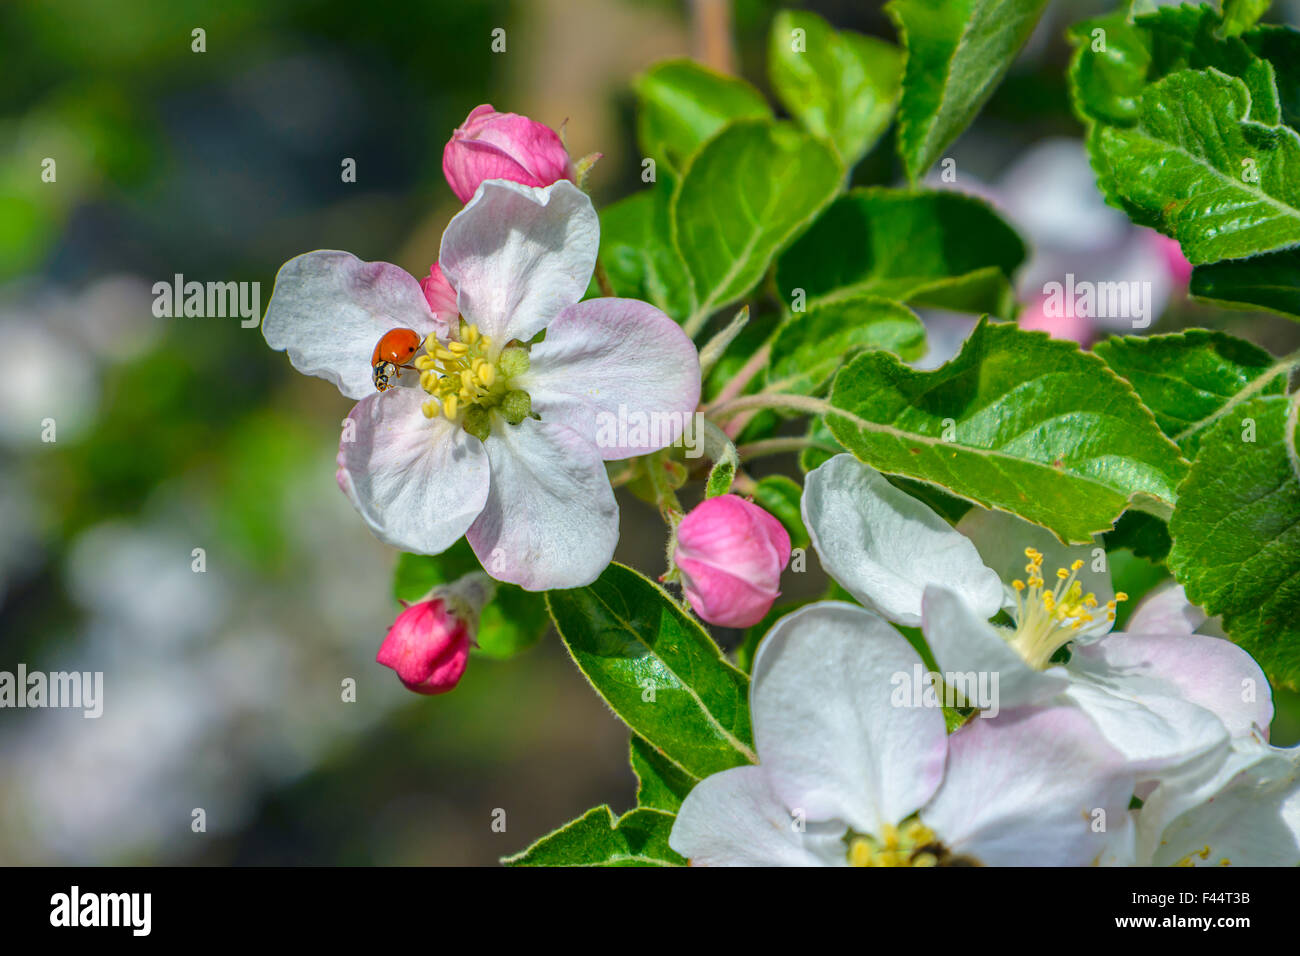 Blossoming branch of a apple tree Stock Photo